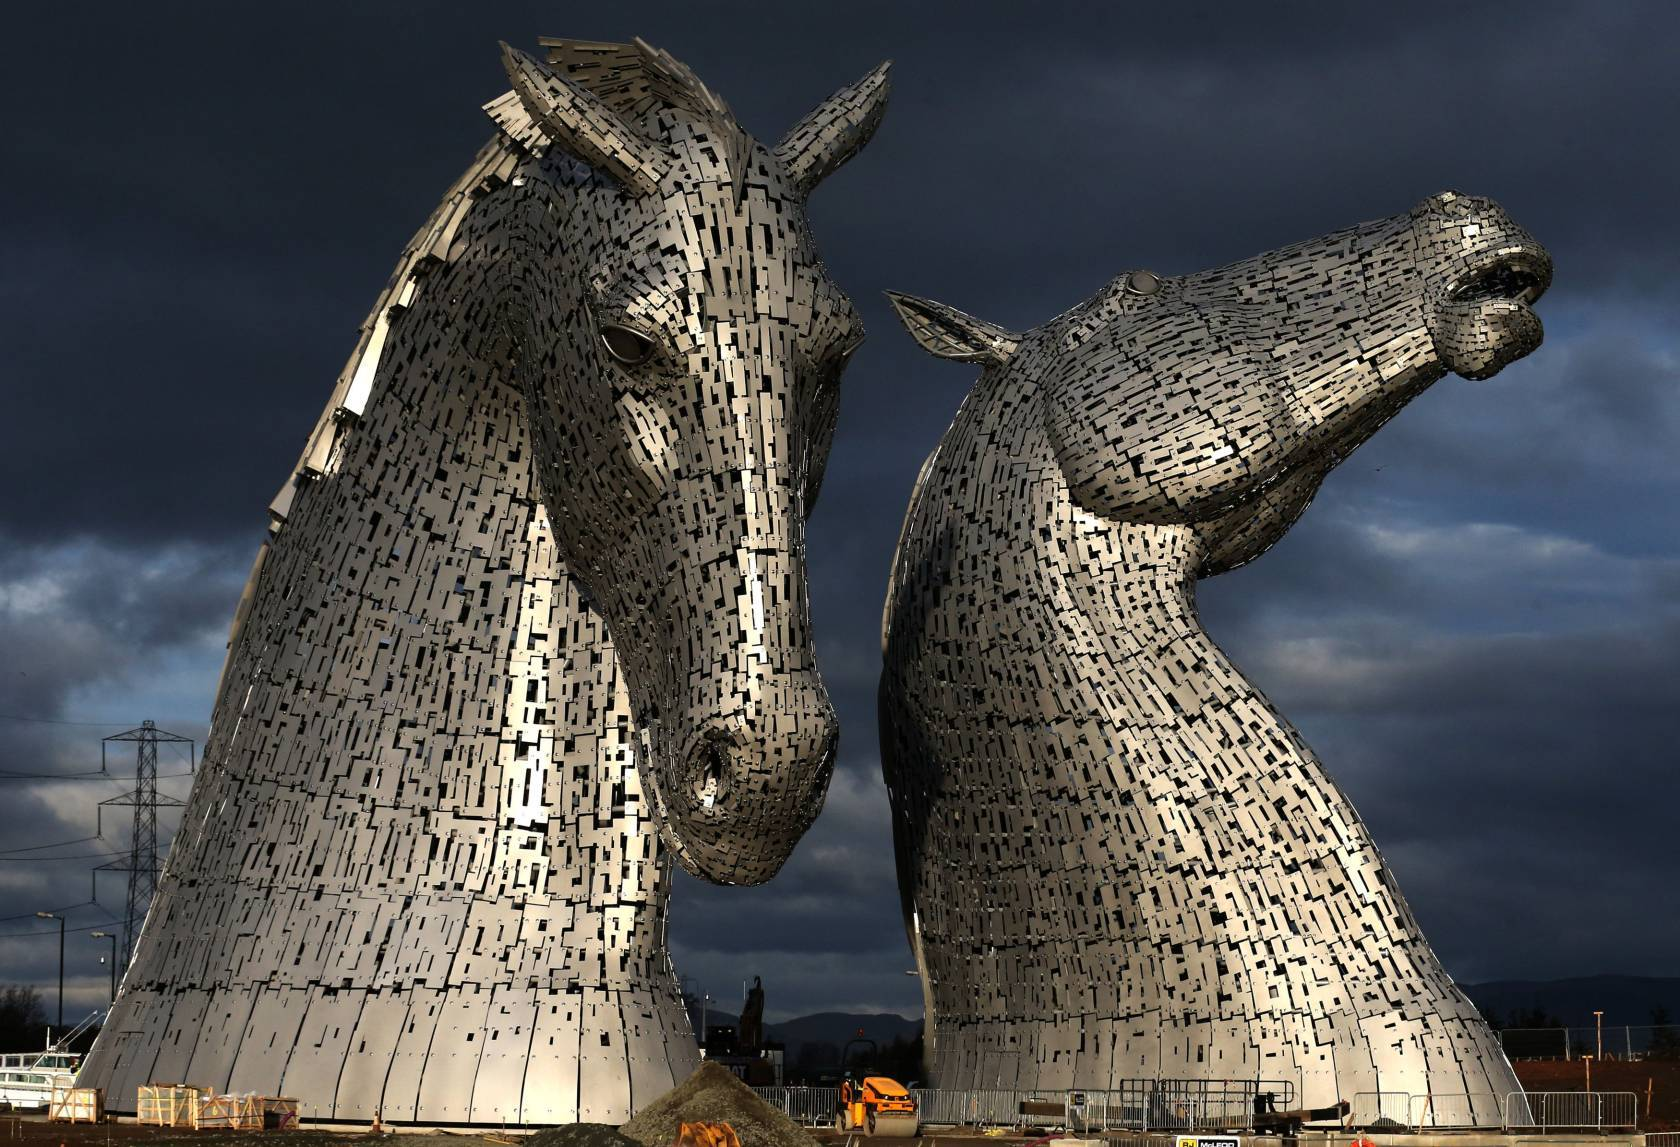 The Kelpies, a public art and visitor attraction created by artist Andy Scott, which forms a gateway to the Forth and Clyde canal at the Helix, Falkirk, Scotland on its completion.